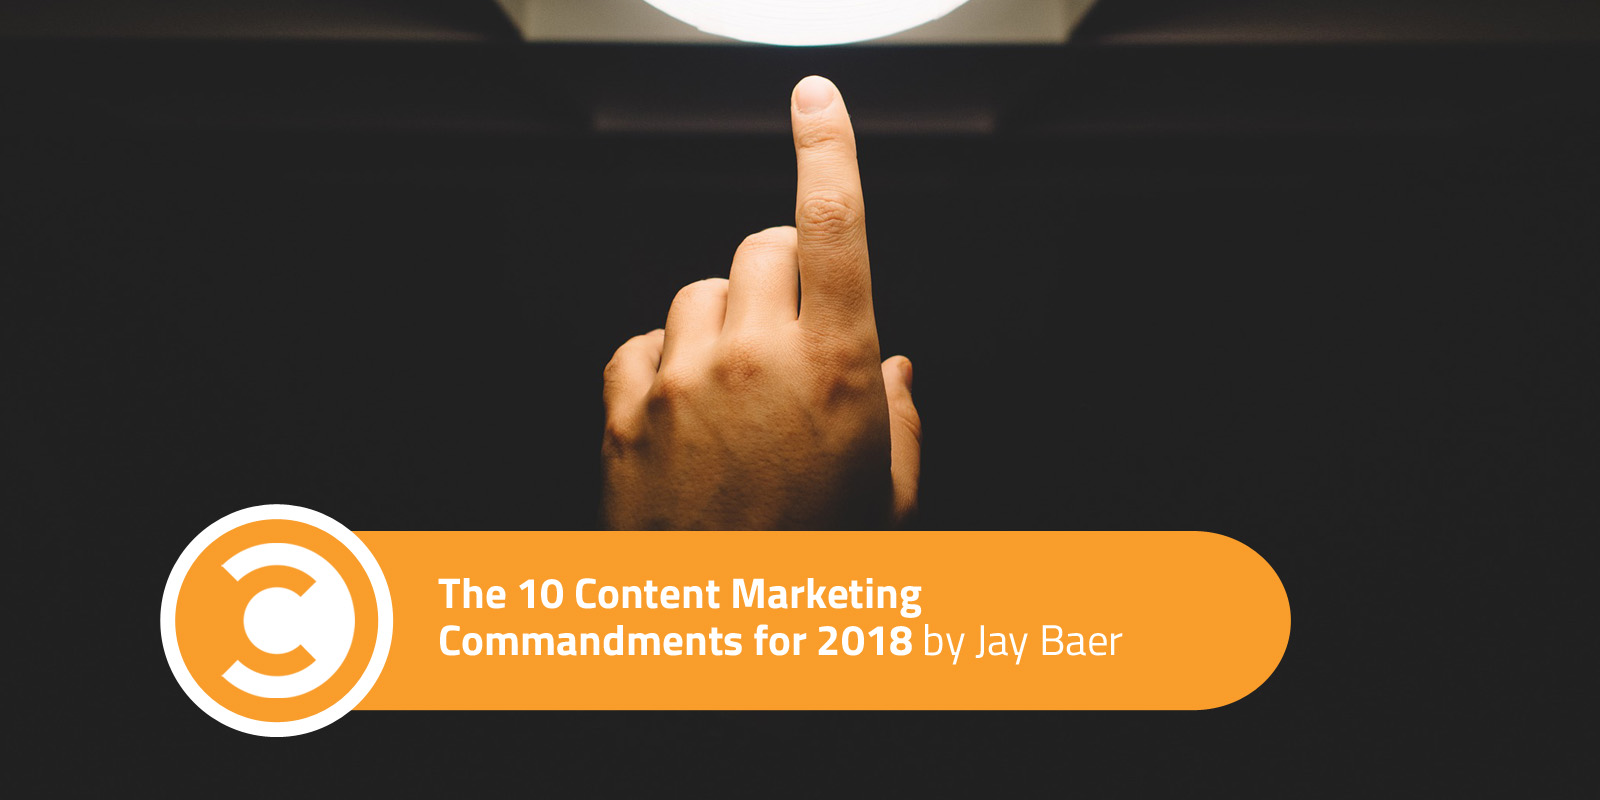 The 10 Content Marketing Commandments for 2018